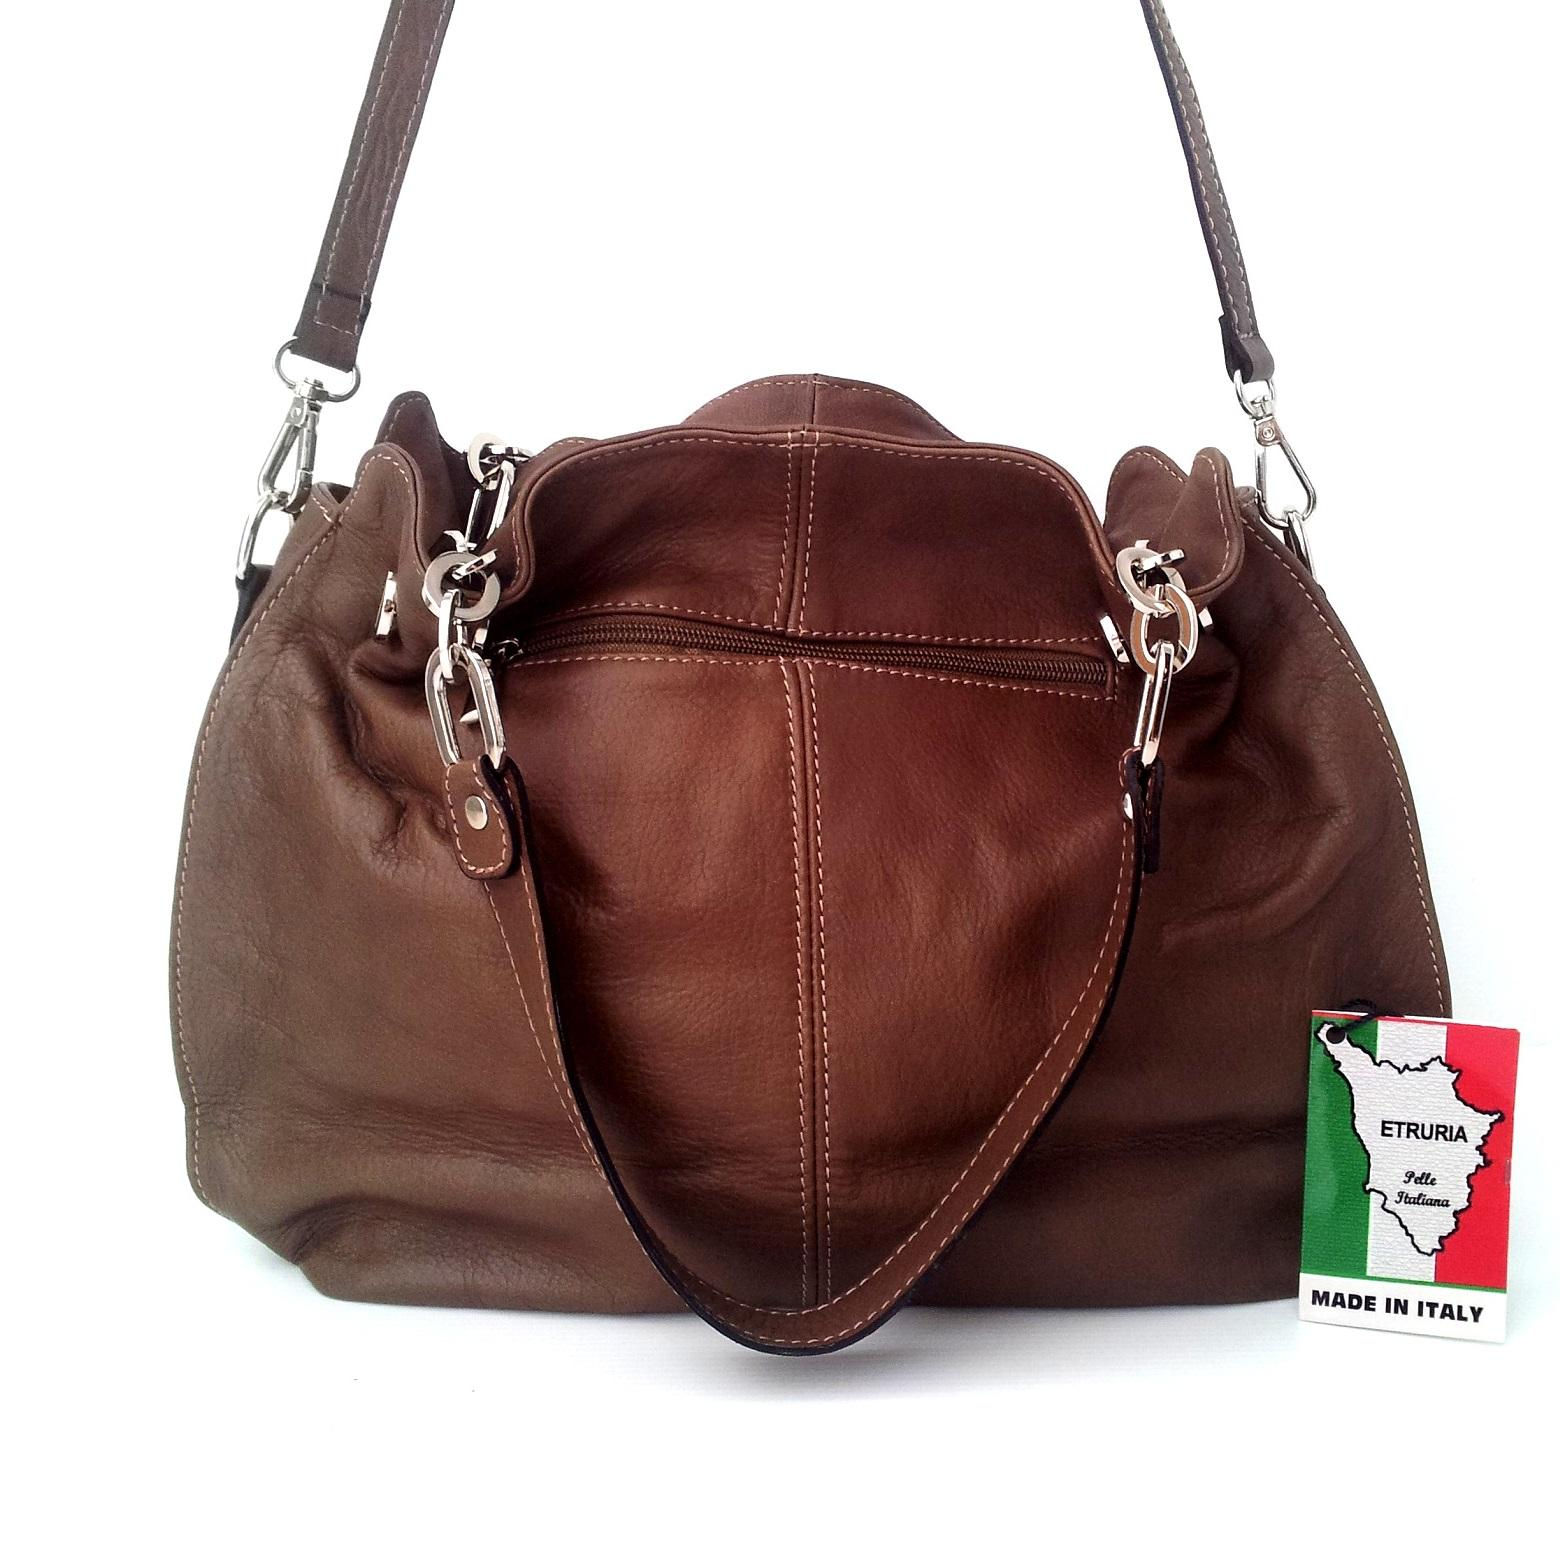 genuine leather soulder bag made in italy